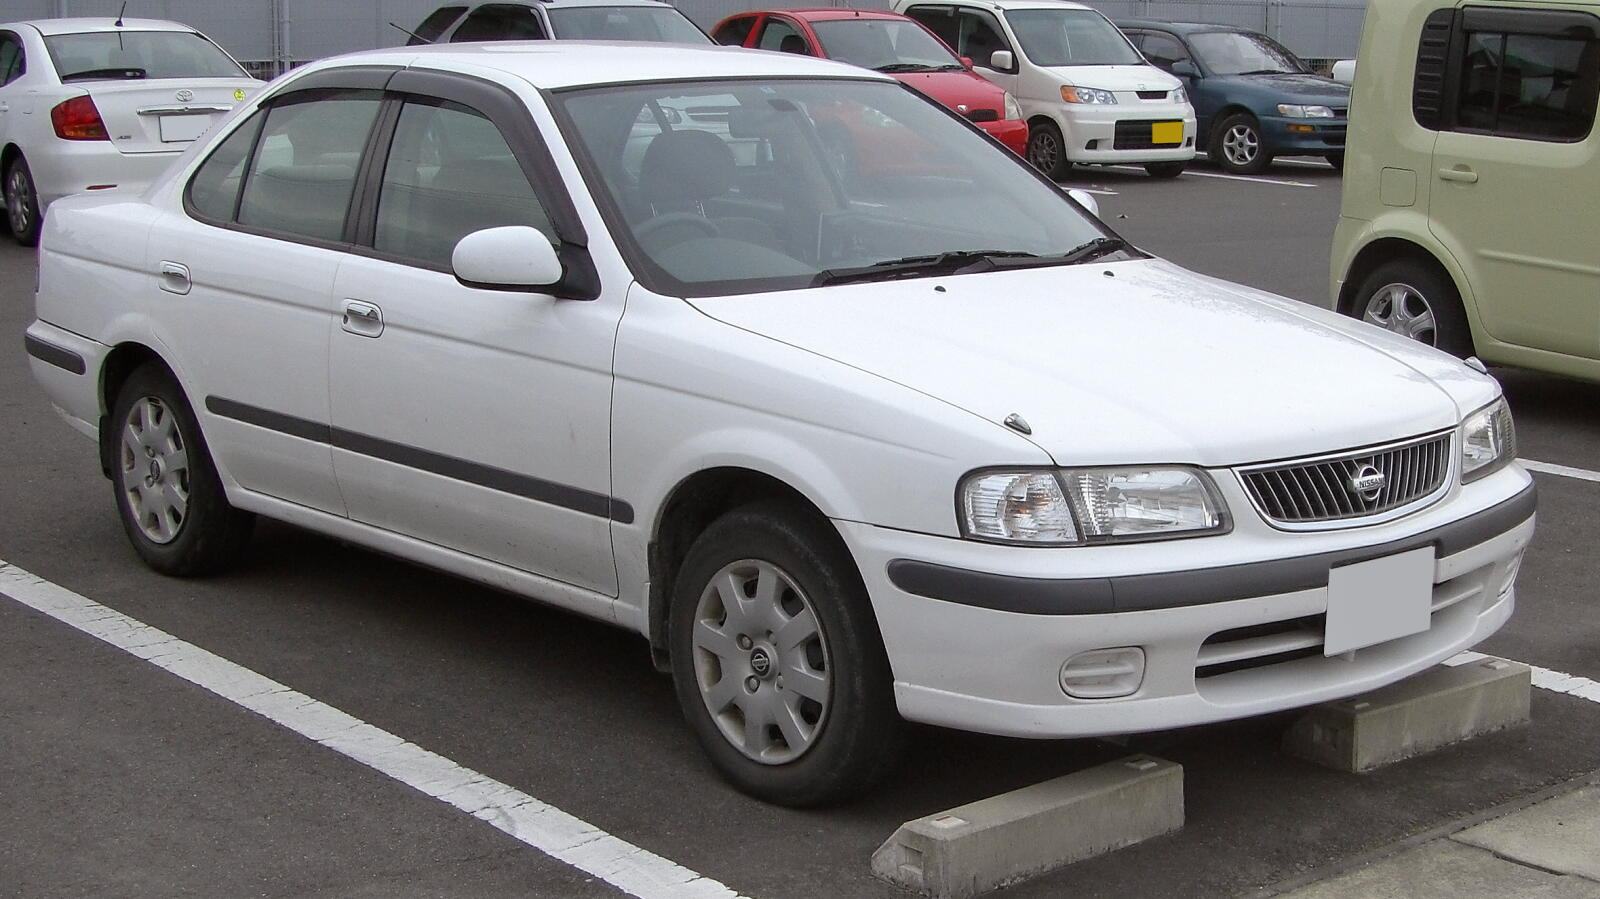 1995 nissan sunny b14 pictures information and specs auto. Black Bedroom Furniture Sets. Home Design Ideas